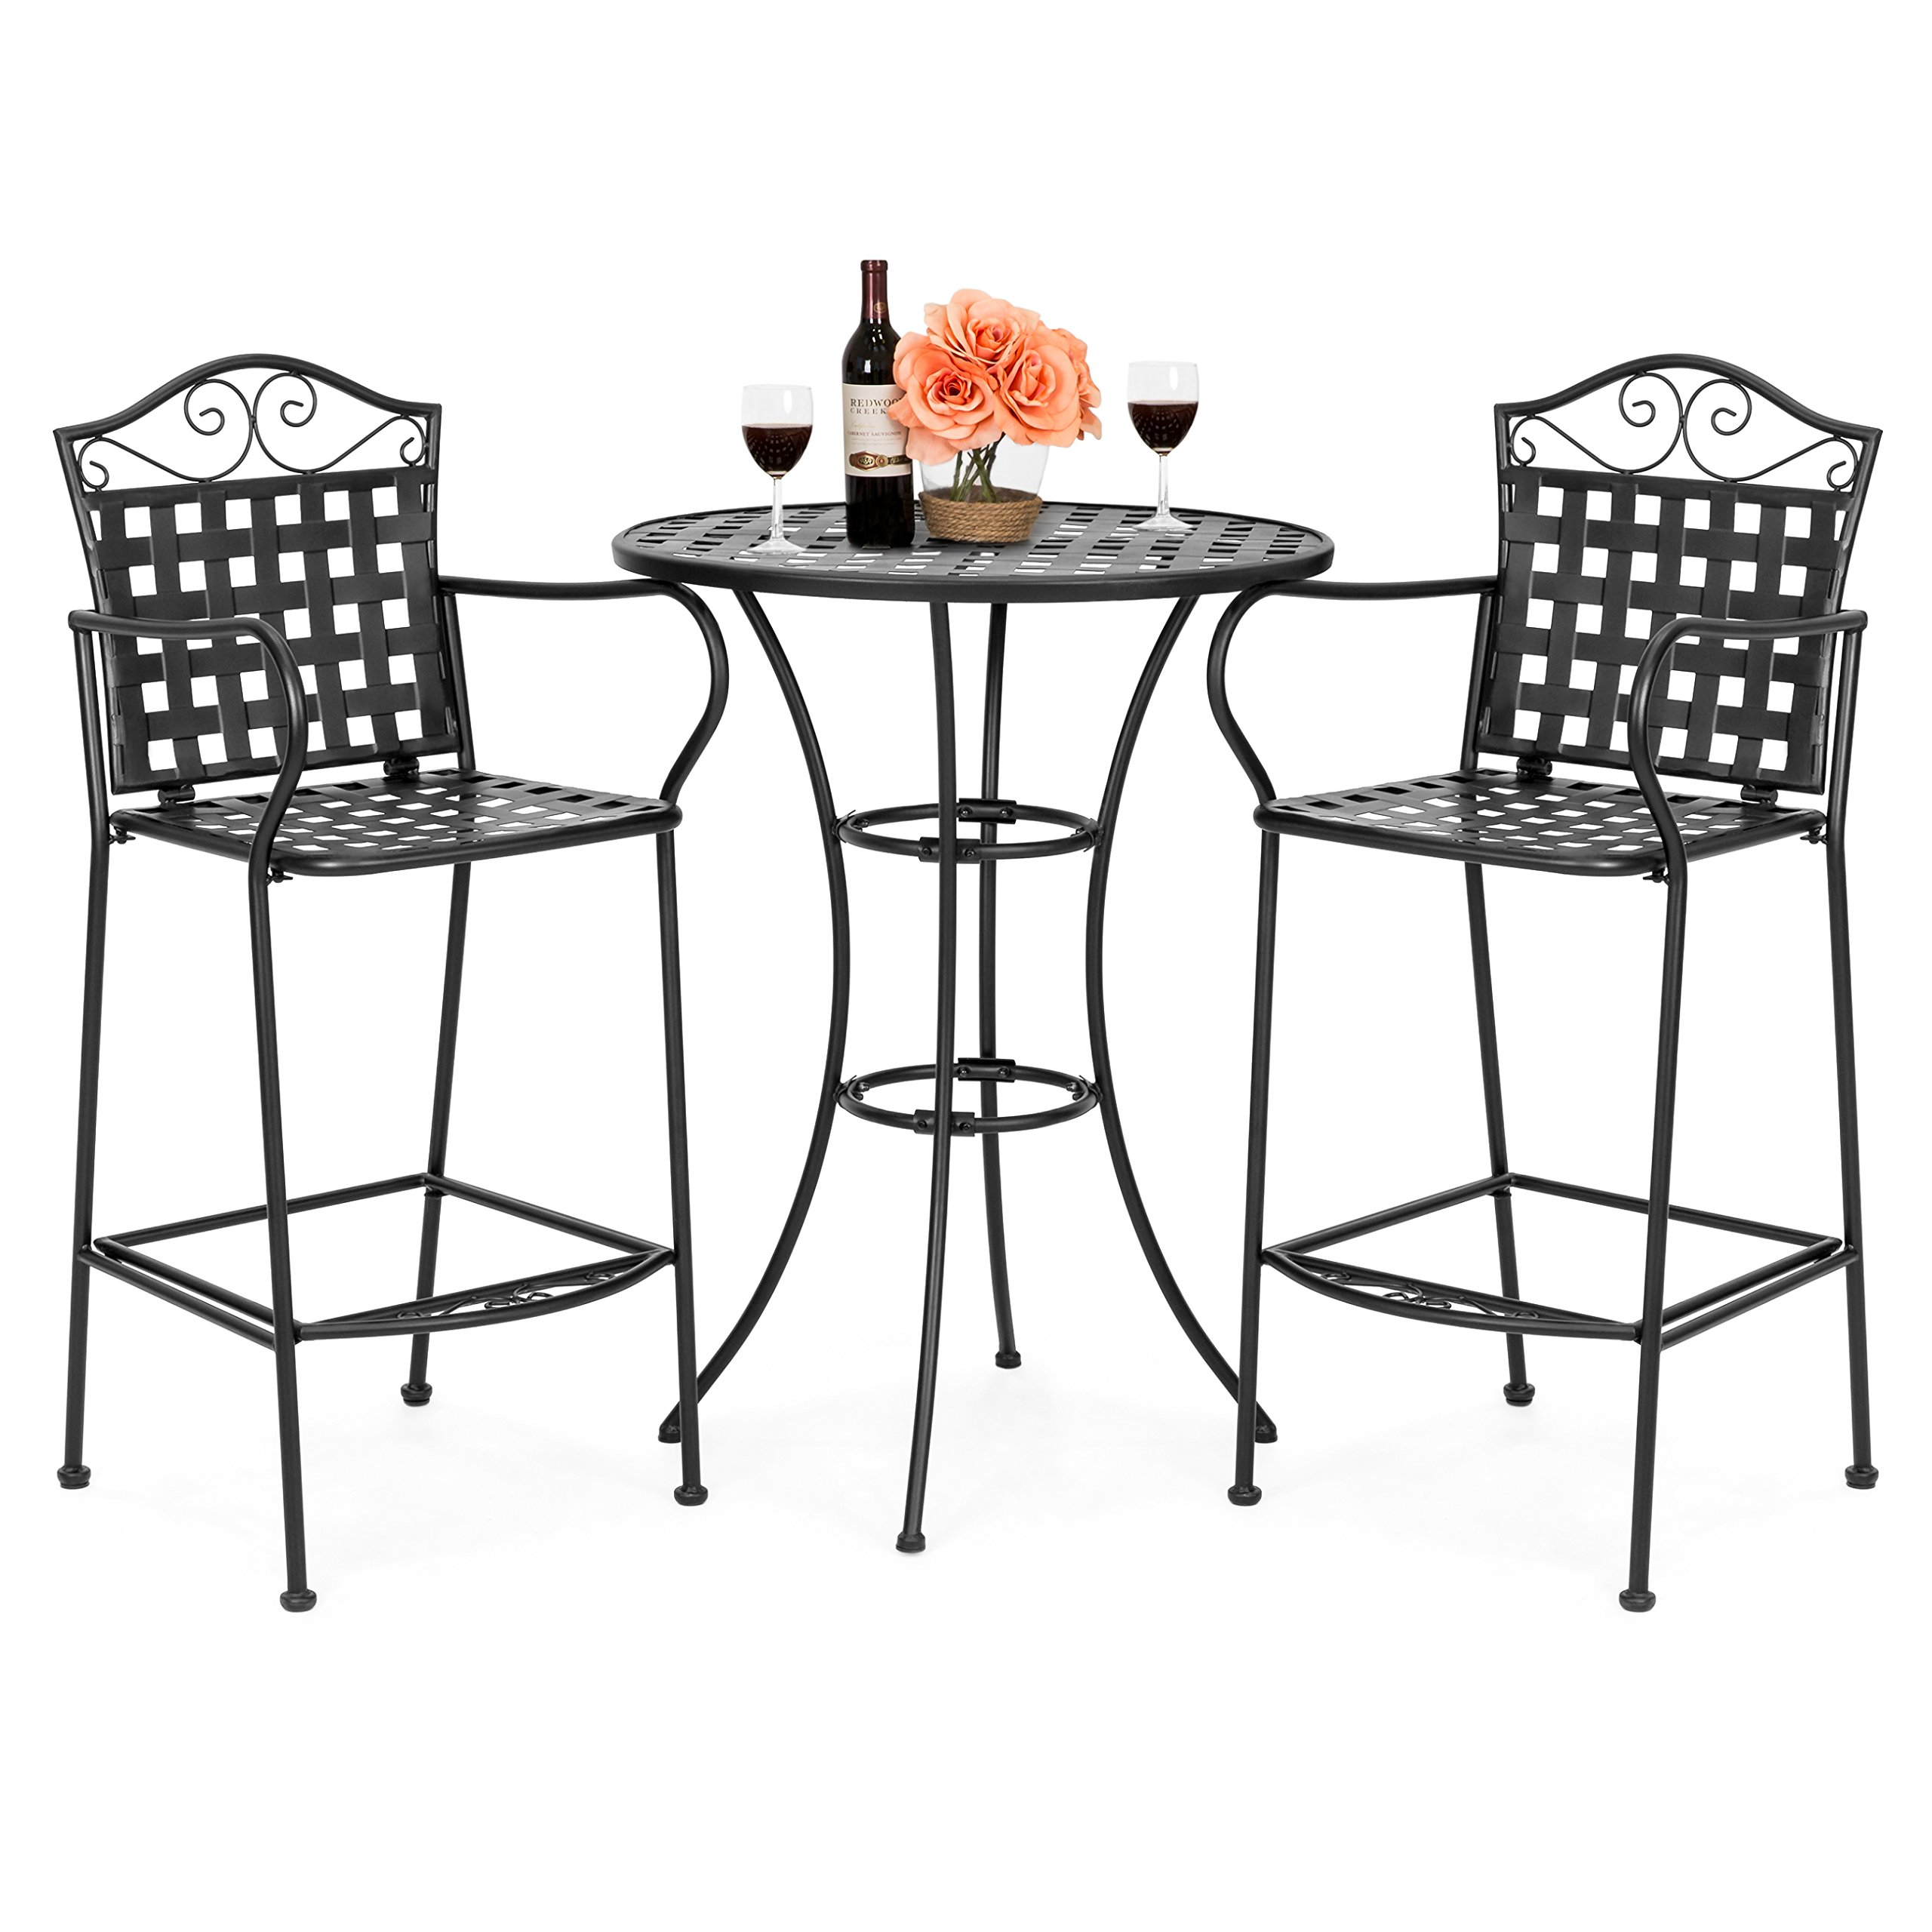 Get Quotations Best Choice Products 3 Piece Woven Pattern Wrought Iron Patio Bar Height Bistro Table Set